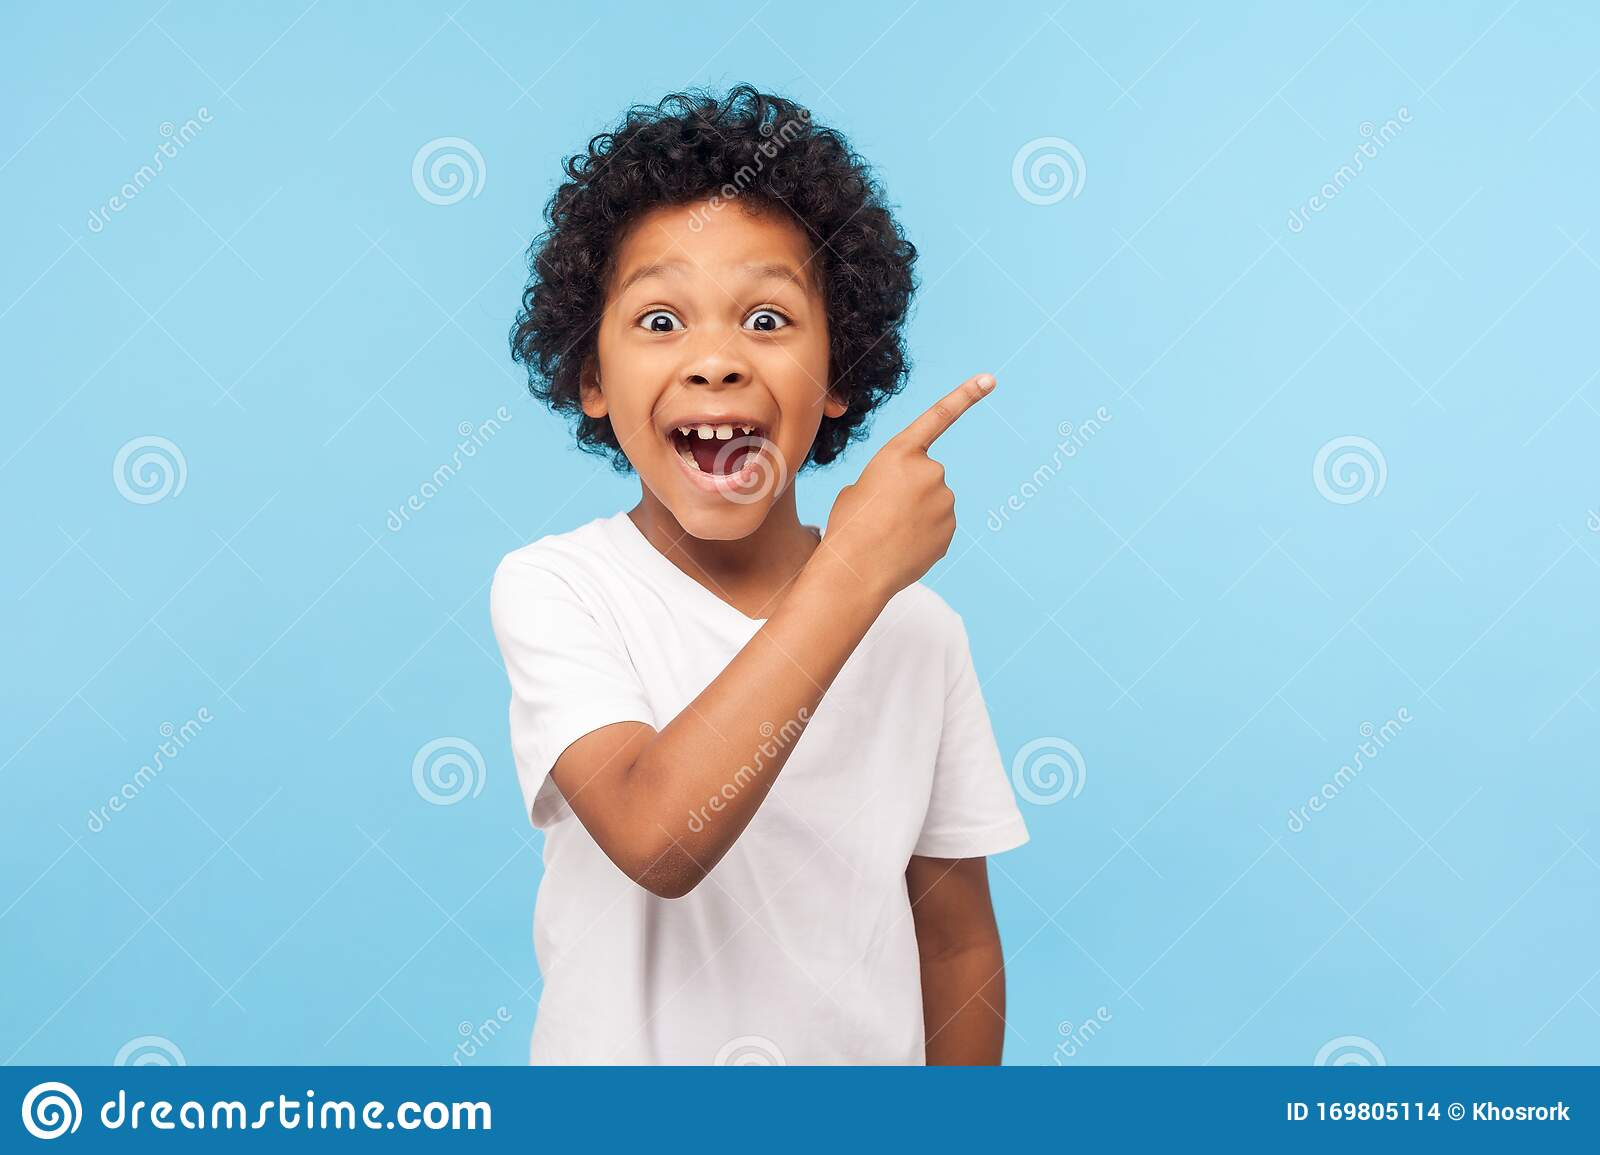 Wow Look Advertise Here Portrait Of Amazed Cute Little Boy With Curly Hair Pointing To Empty Place Stock Photo Image Of Little Empty 169805114